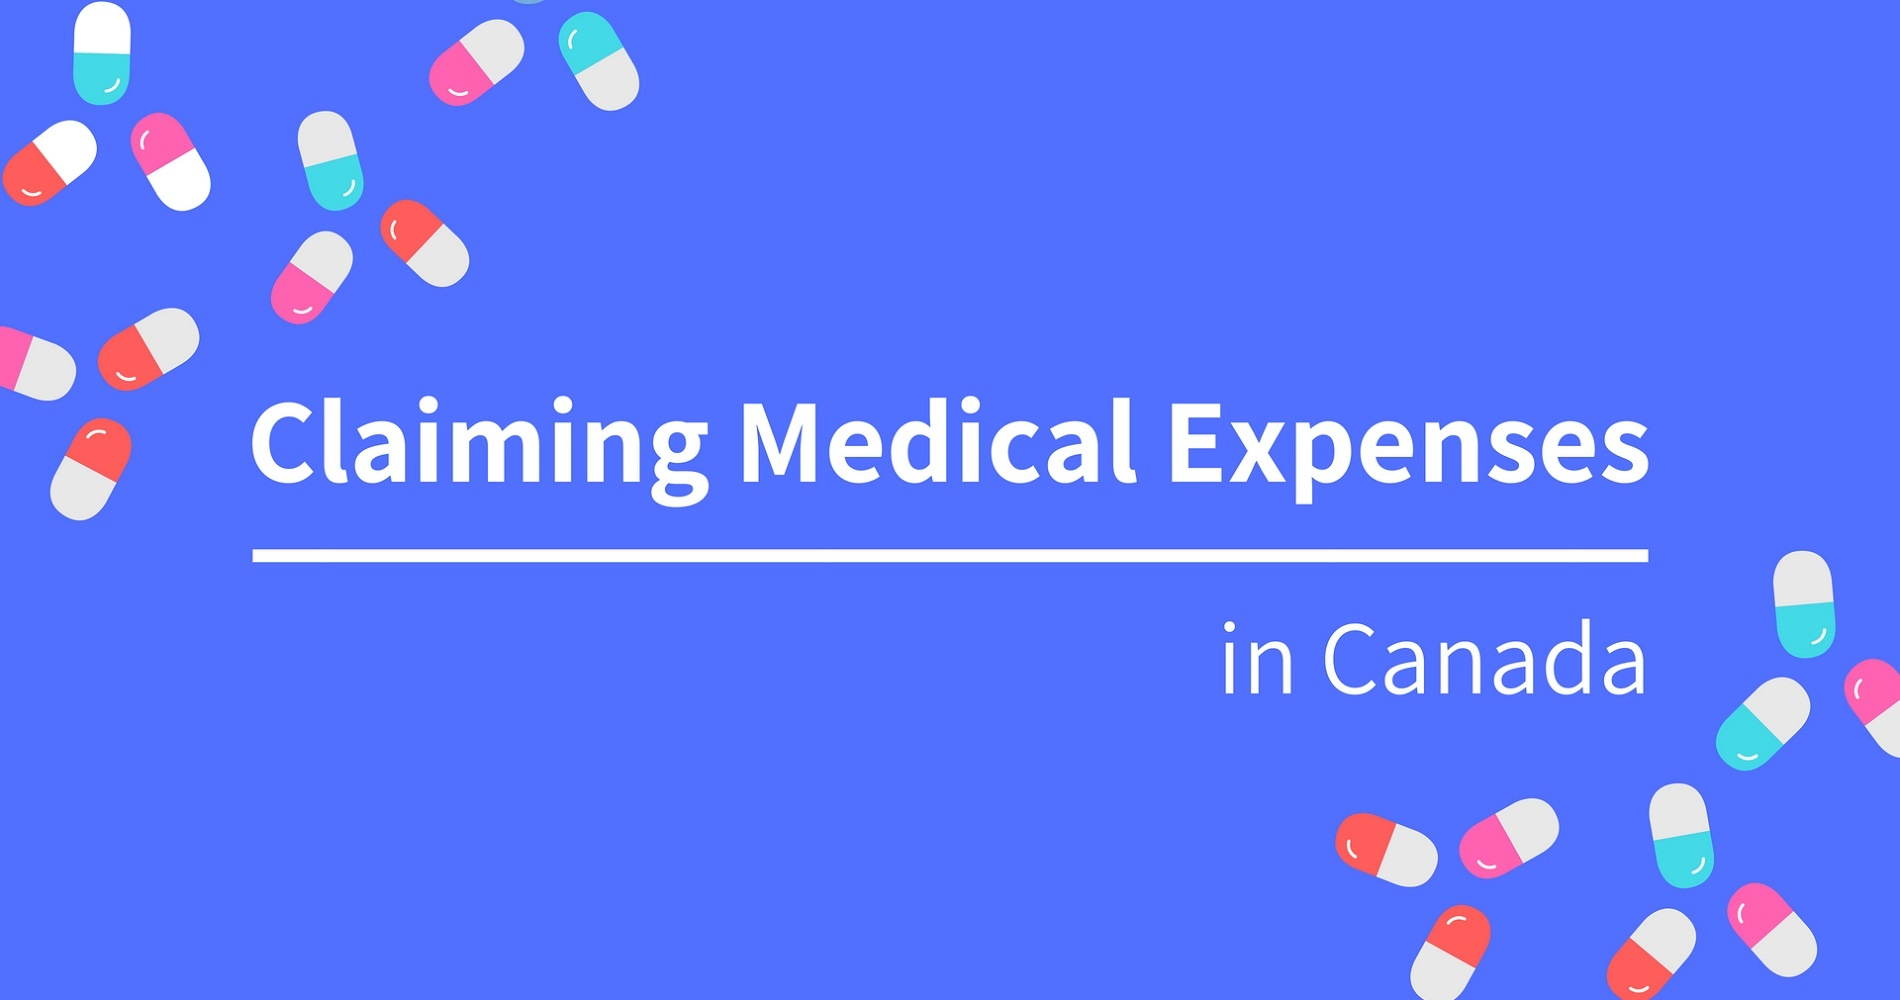 What medical expenses can I claim on my taxes in Canada?